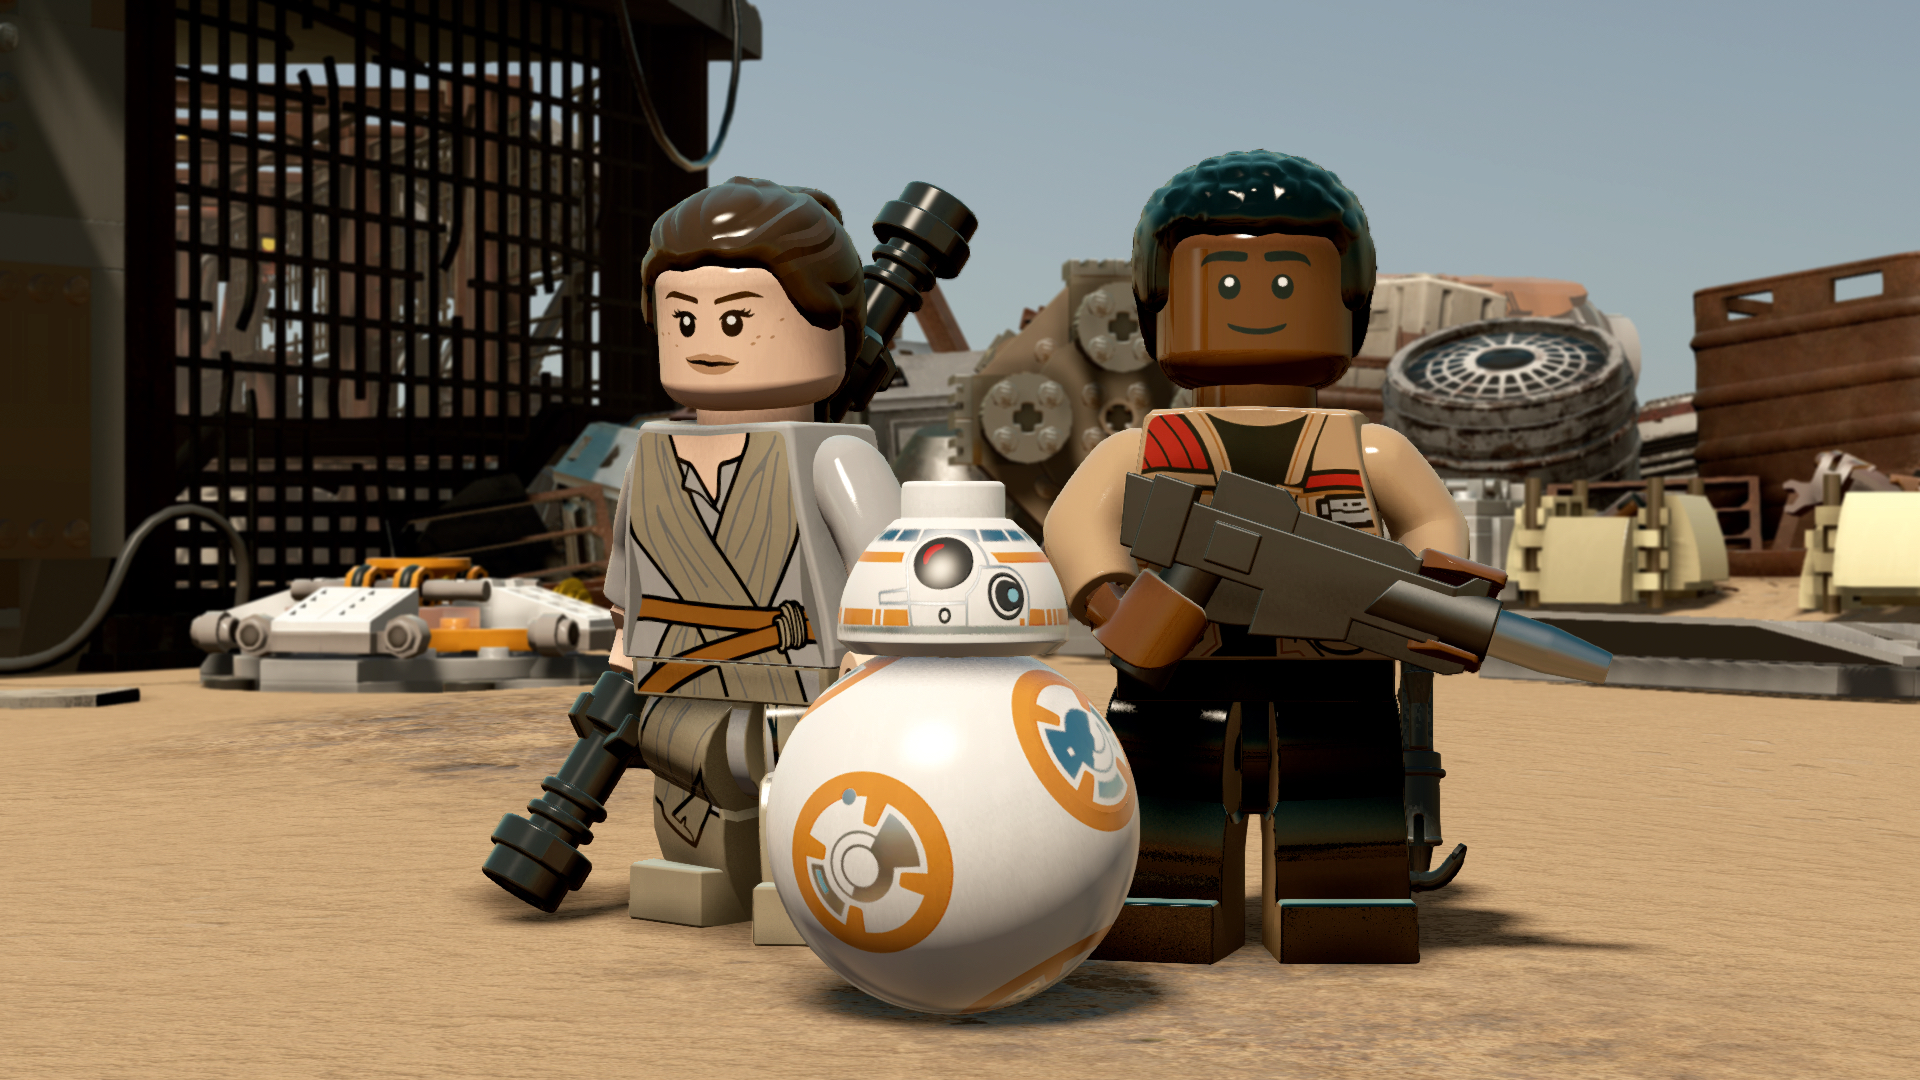 Lego Star Wars The Force Awakens Minikit Locations Guide Gamesradar